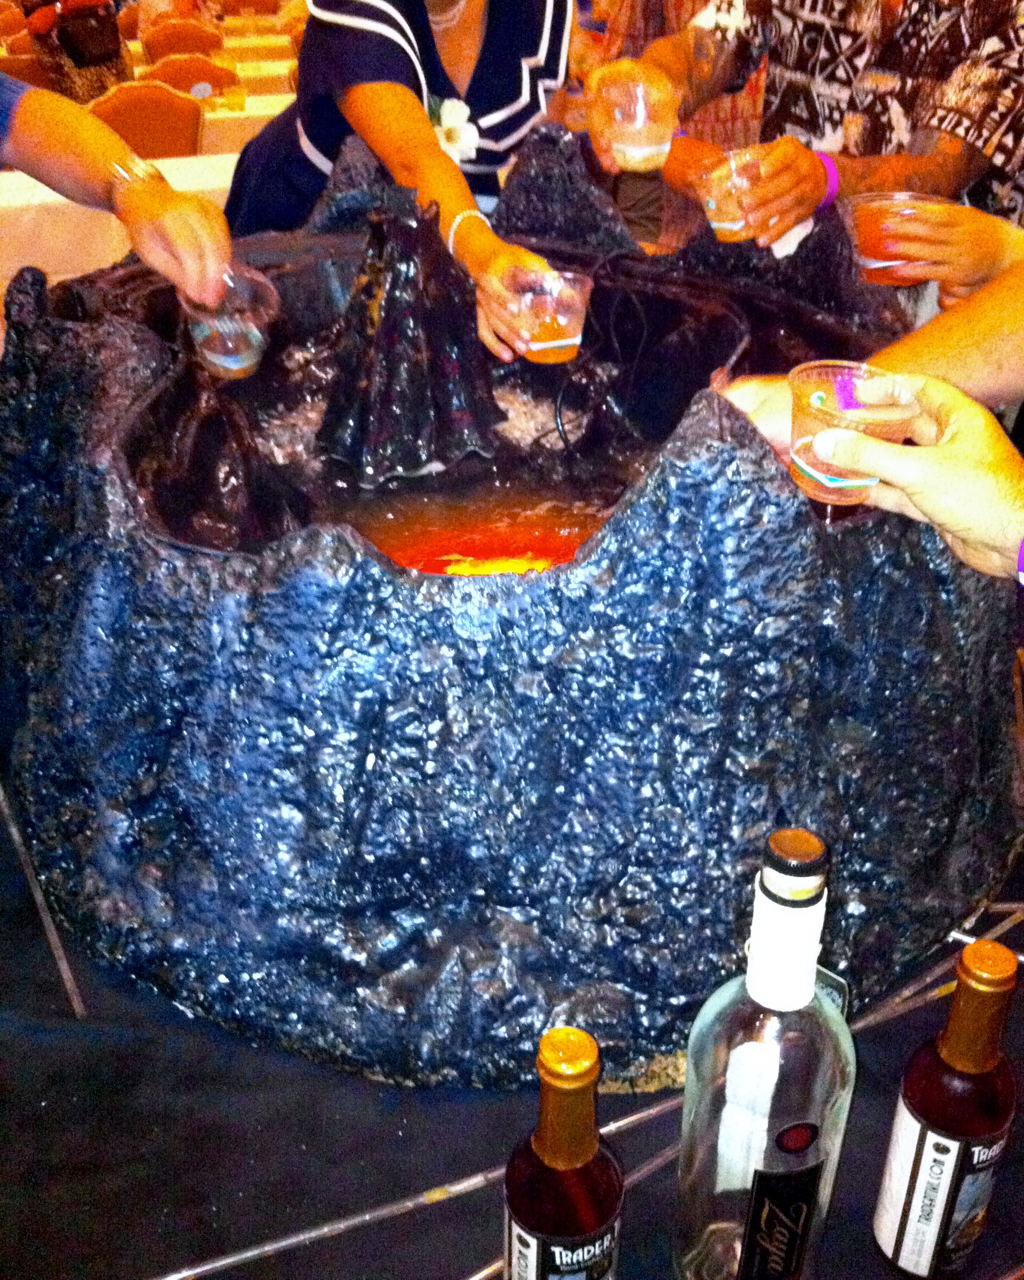 Serving punch from a 40 gallon volcano bowl, as you do.